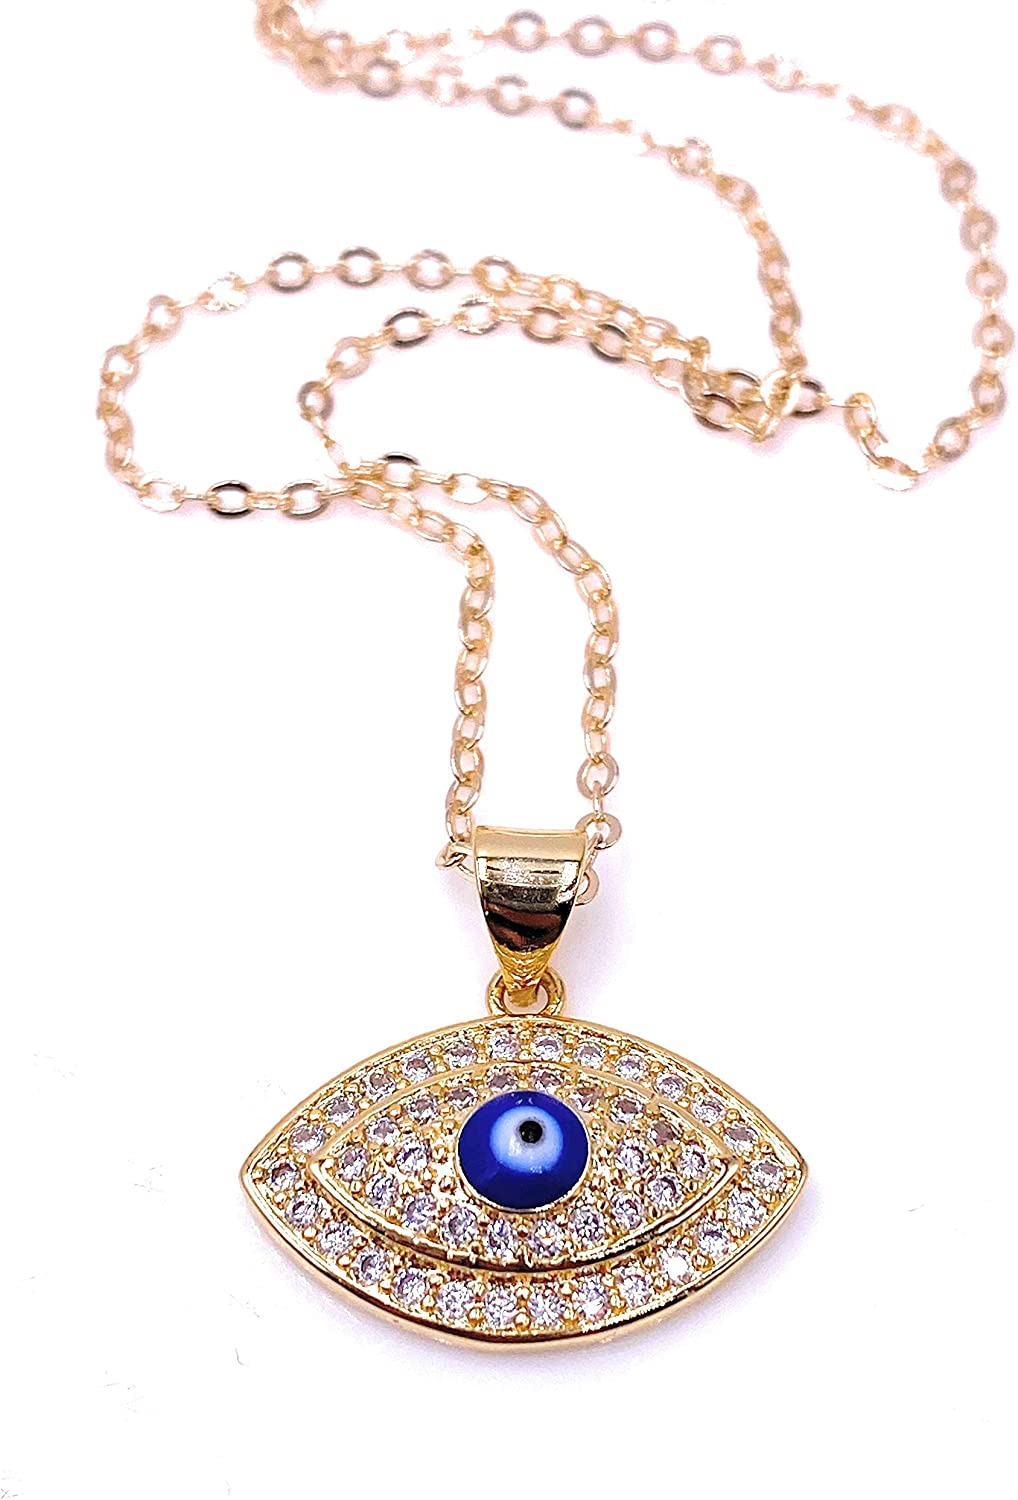 Mava Art CZ Evil Eye Pendant Necklace 18K Gold Plated Chain Protection Jewelry for Women